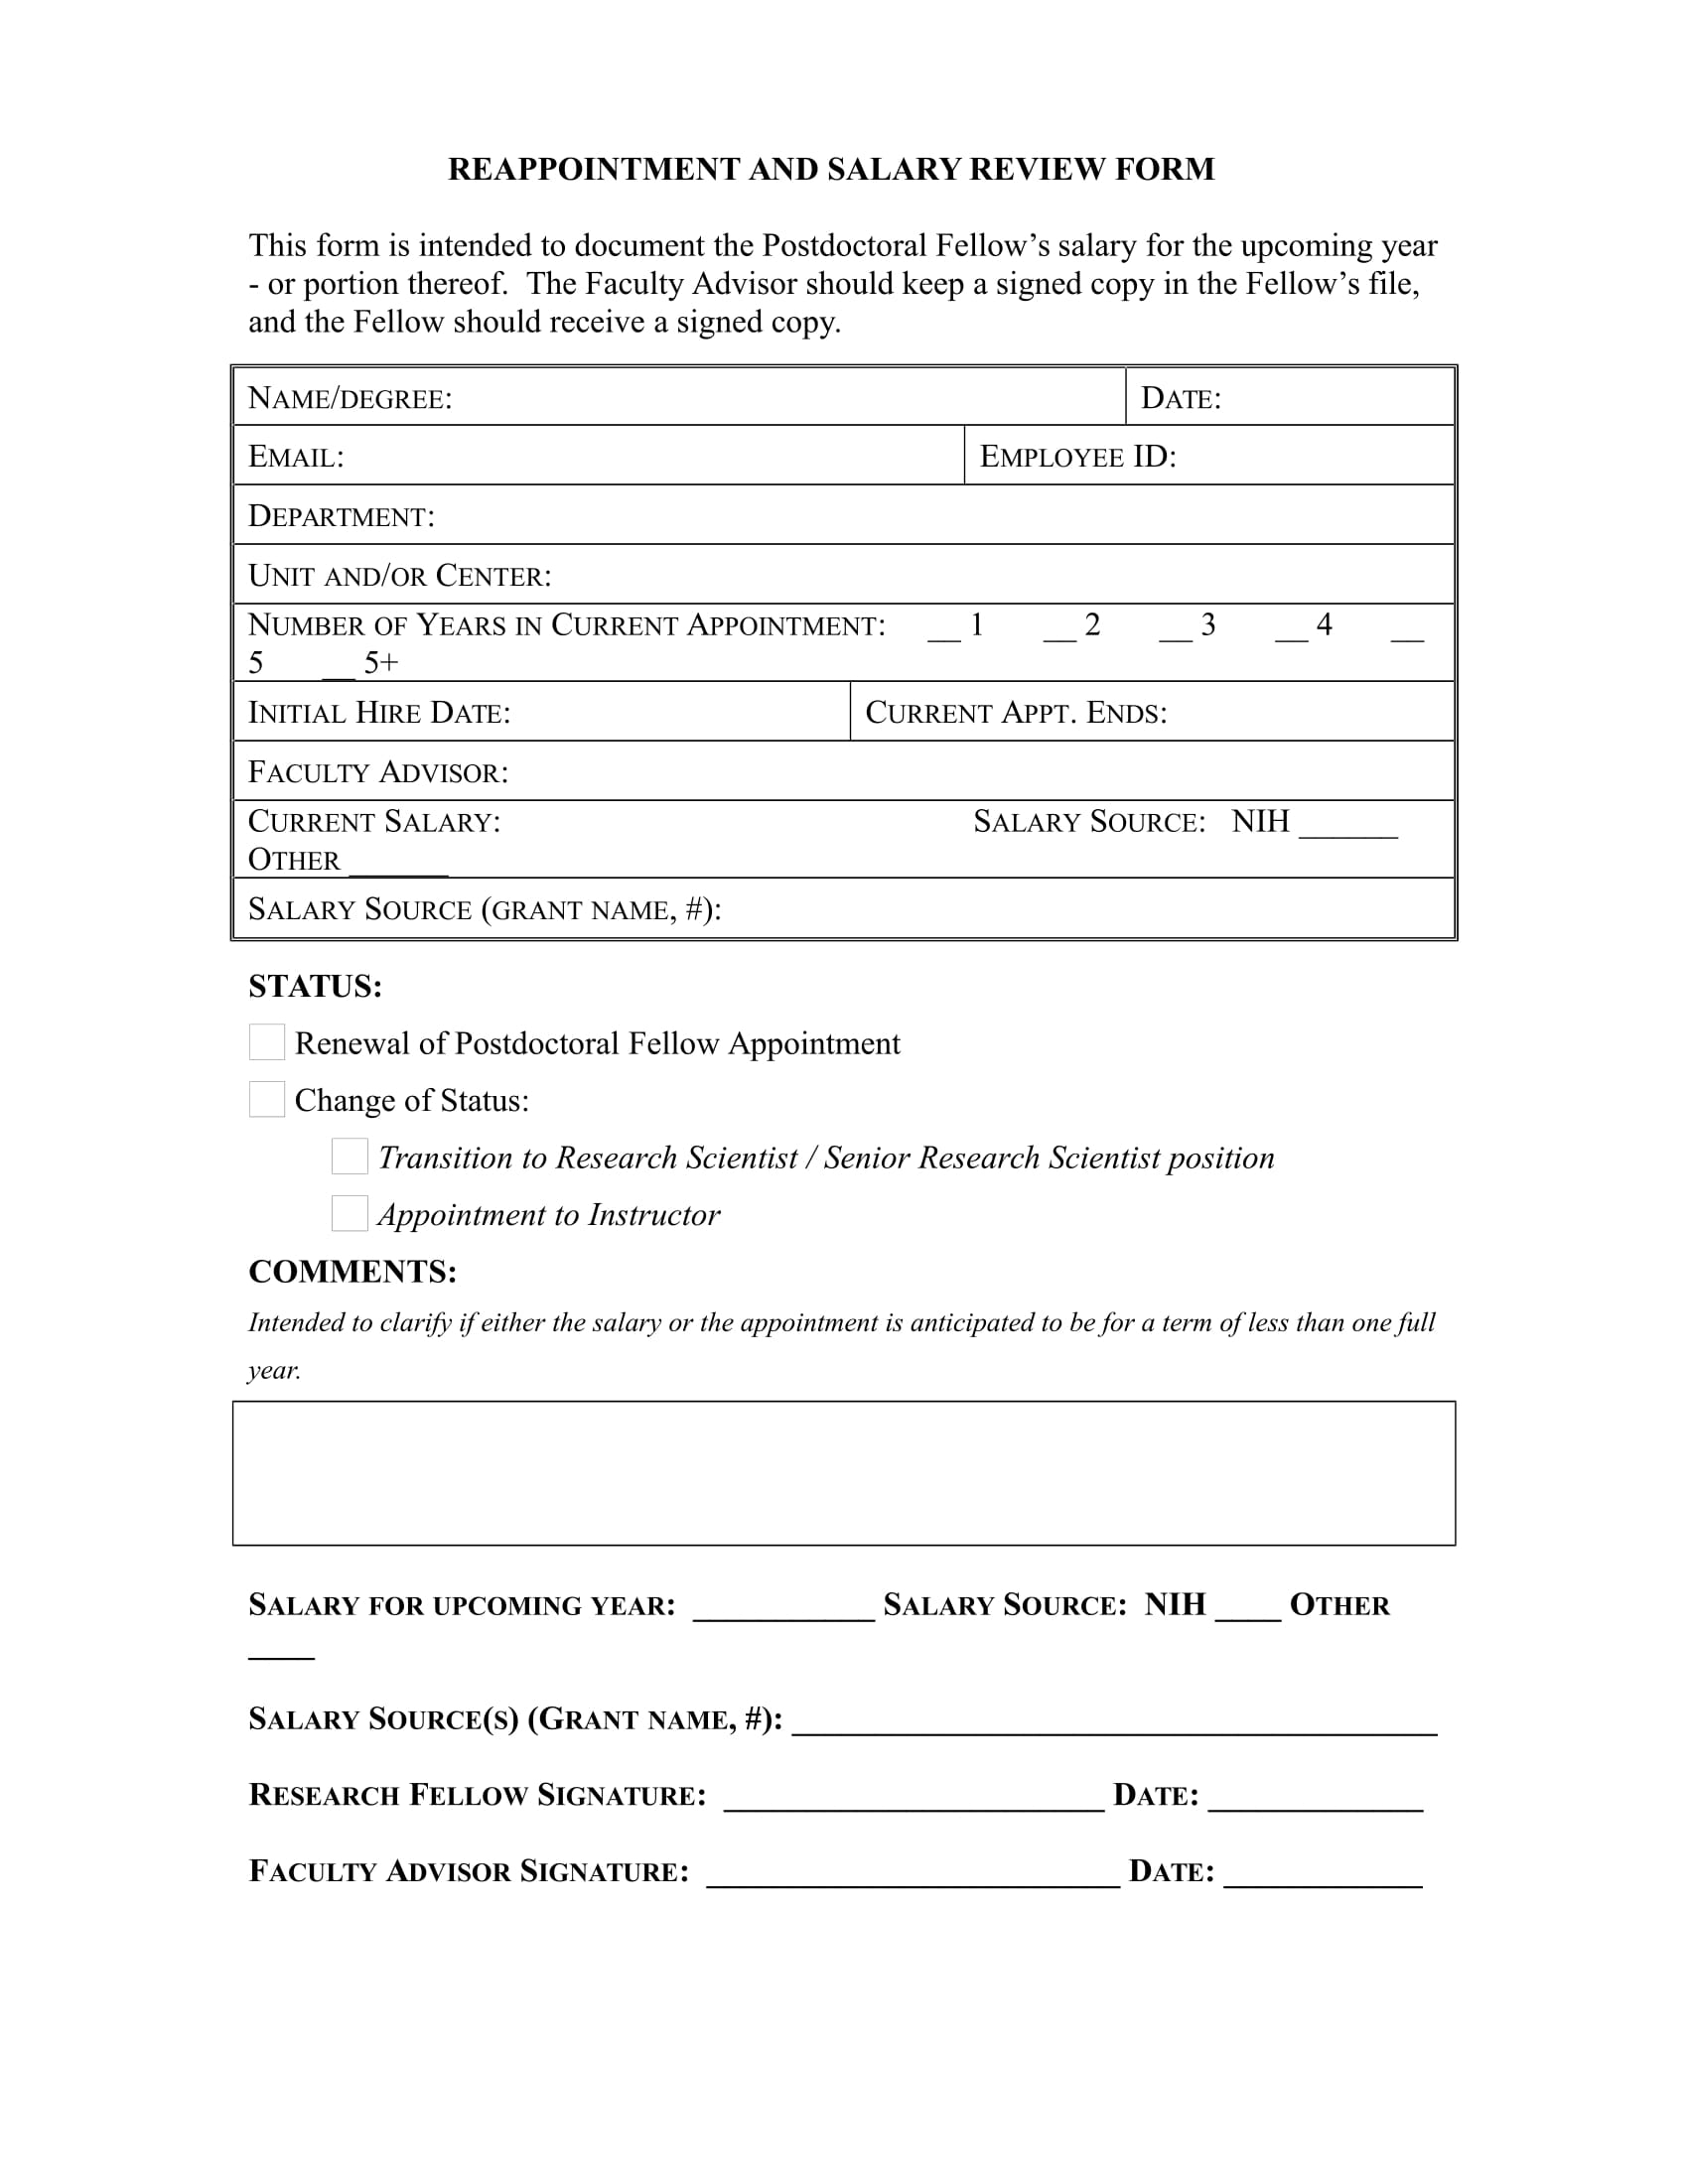 reappointment and salary review form 1